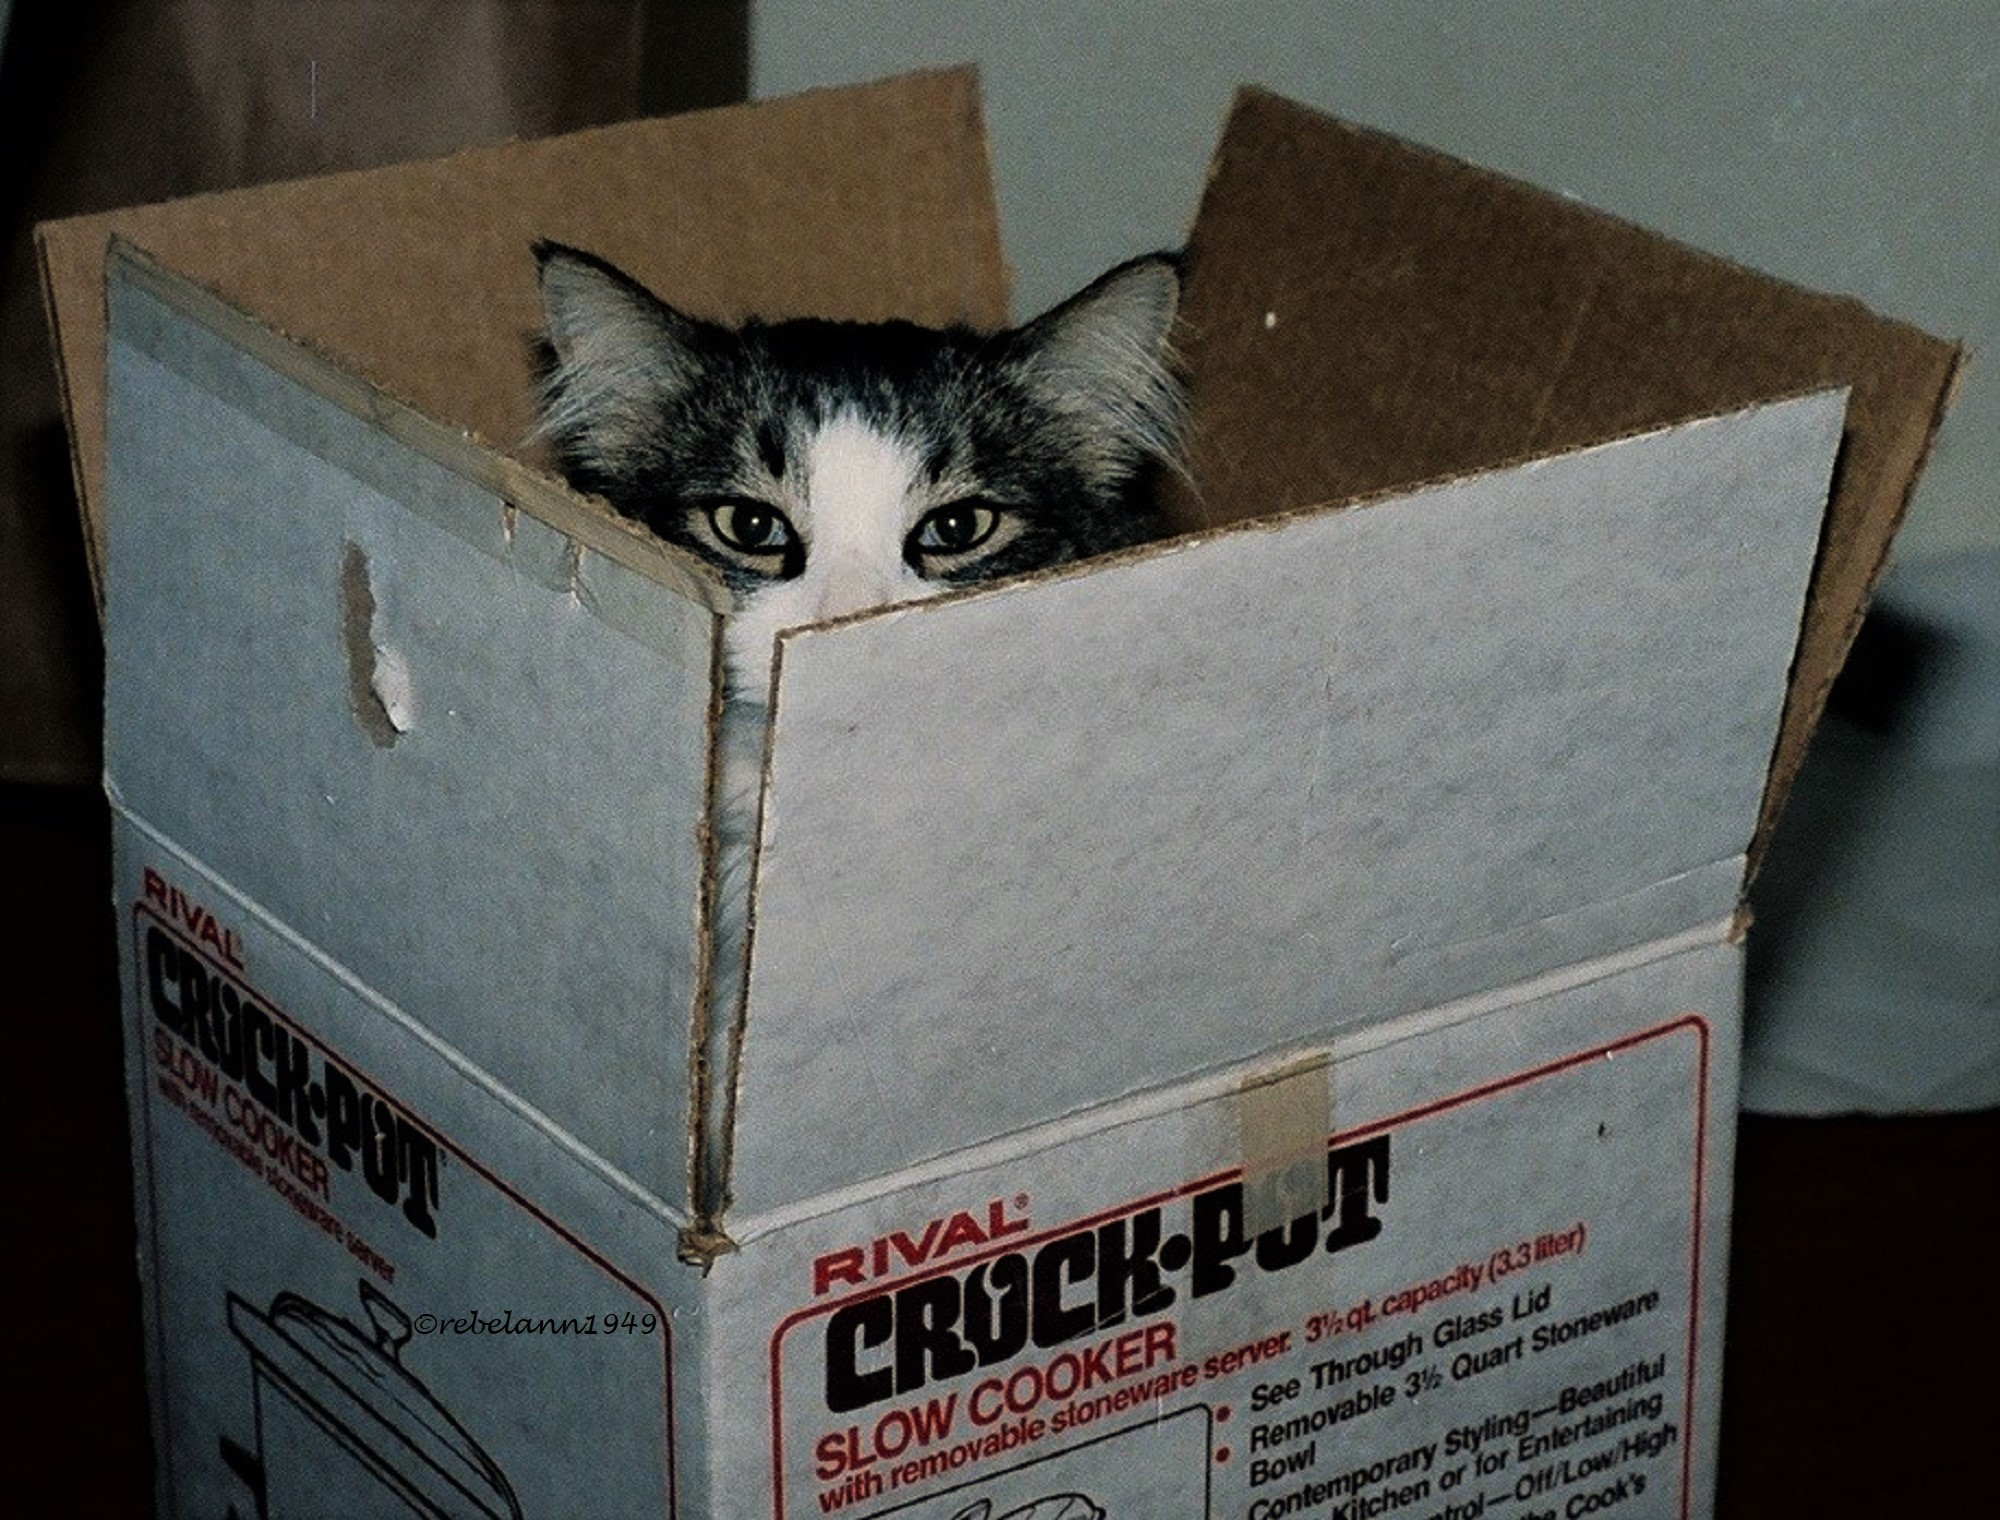 Hotshot peeking at me out of his box, he was such a sweetheart.